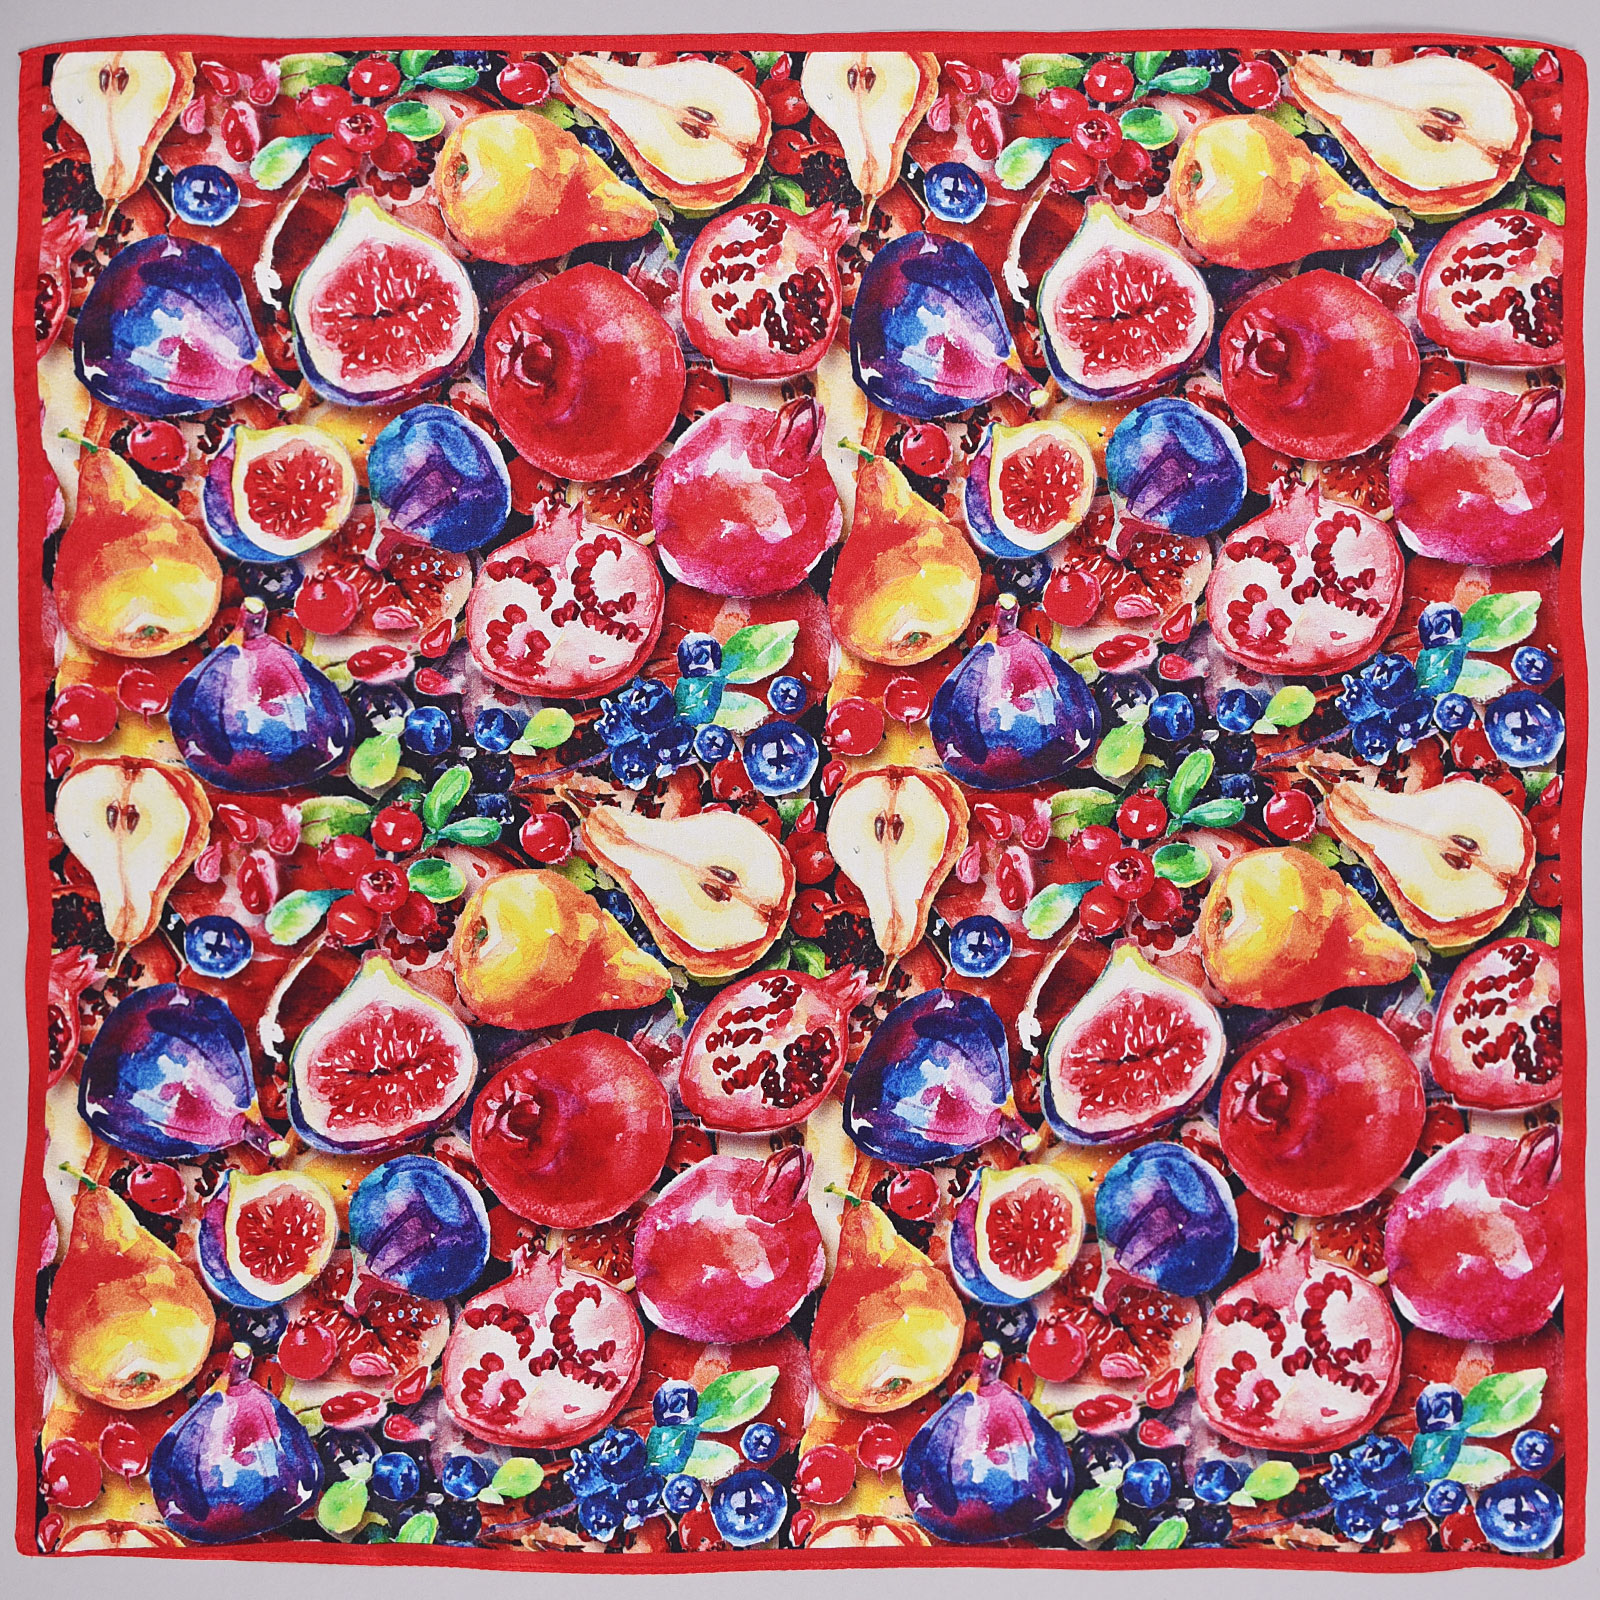 AT-03860-rouge-A16-carr-soie-petit-fruits-rouges